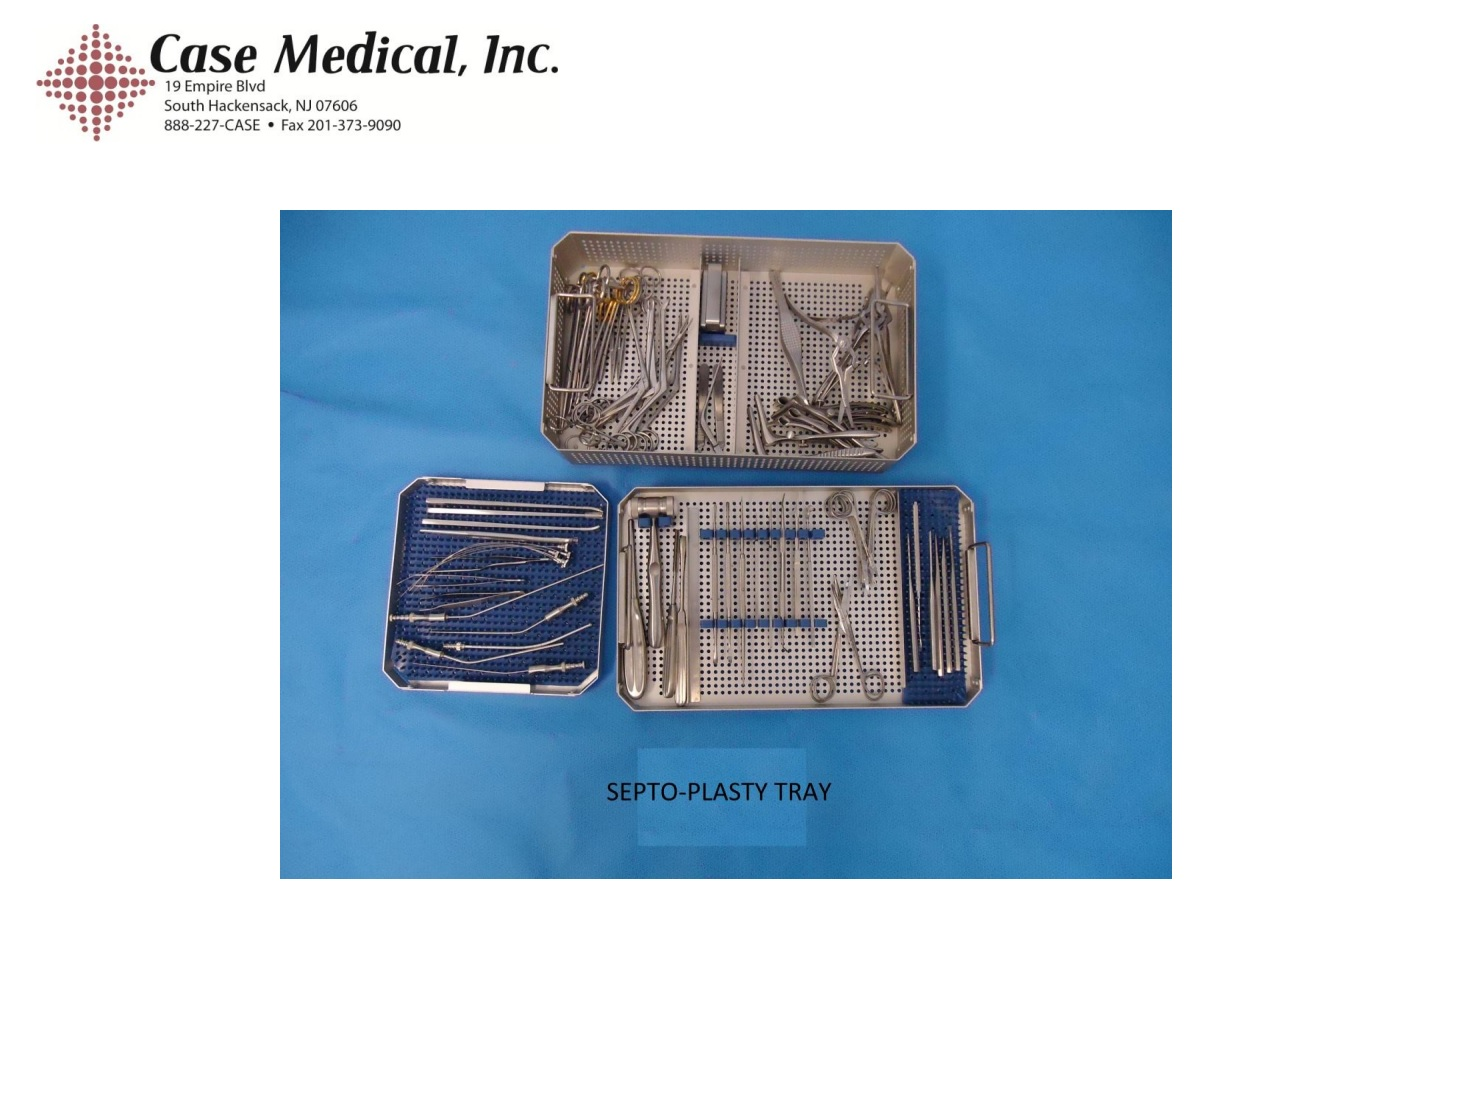 container-septo-plasty-case-medical